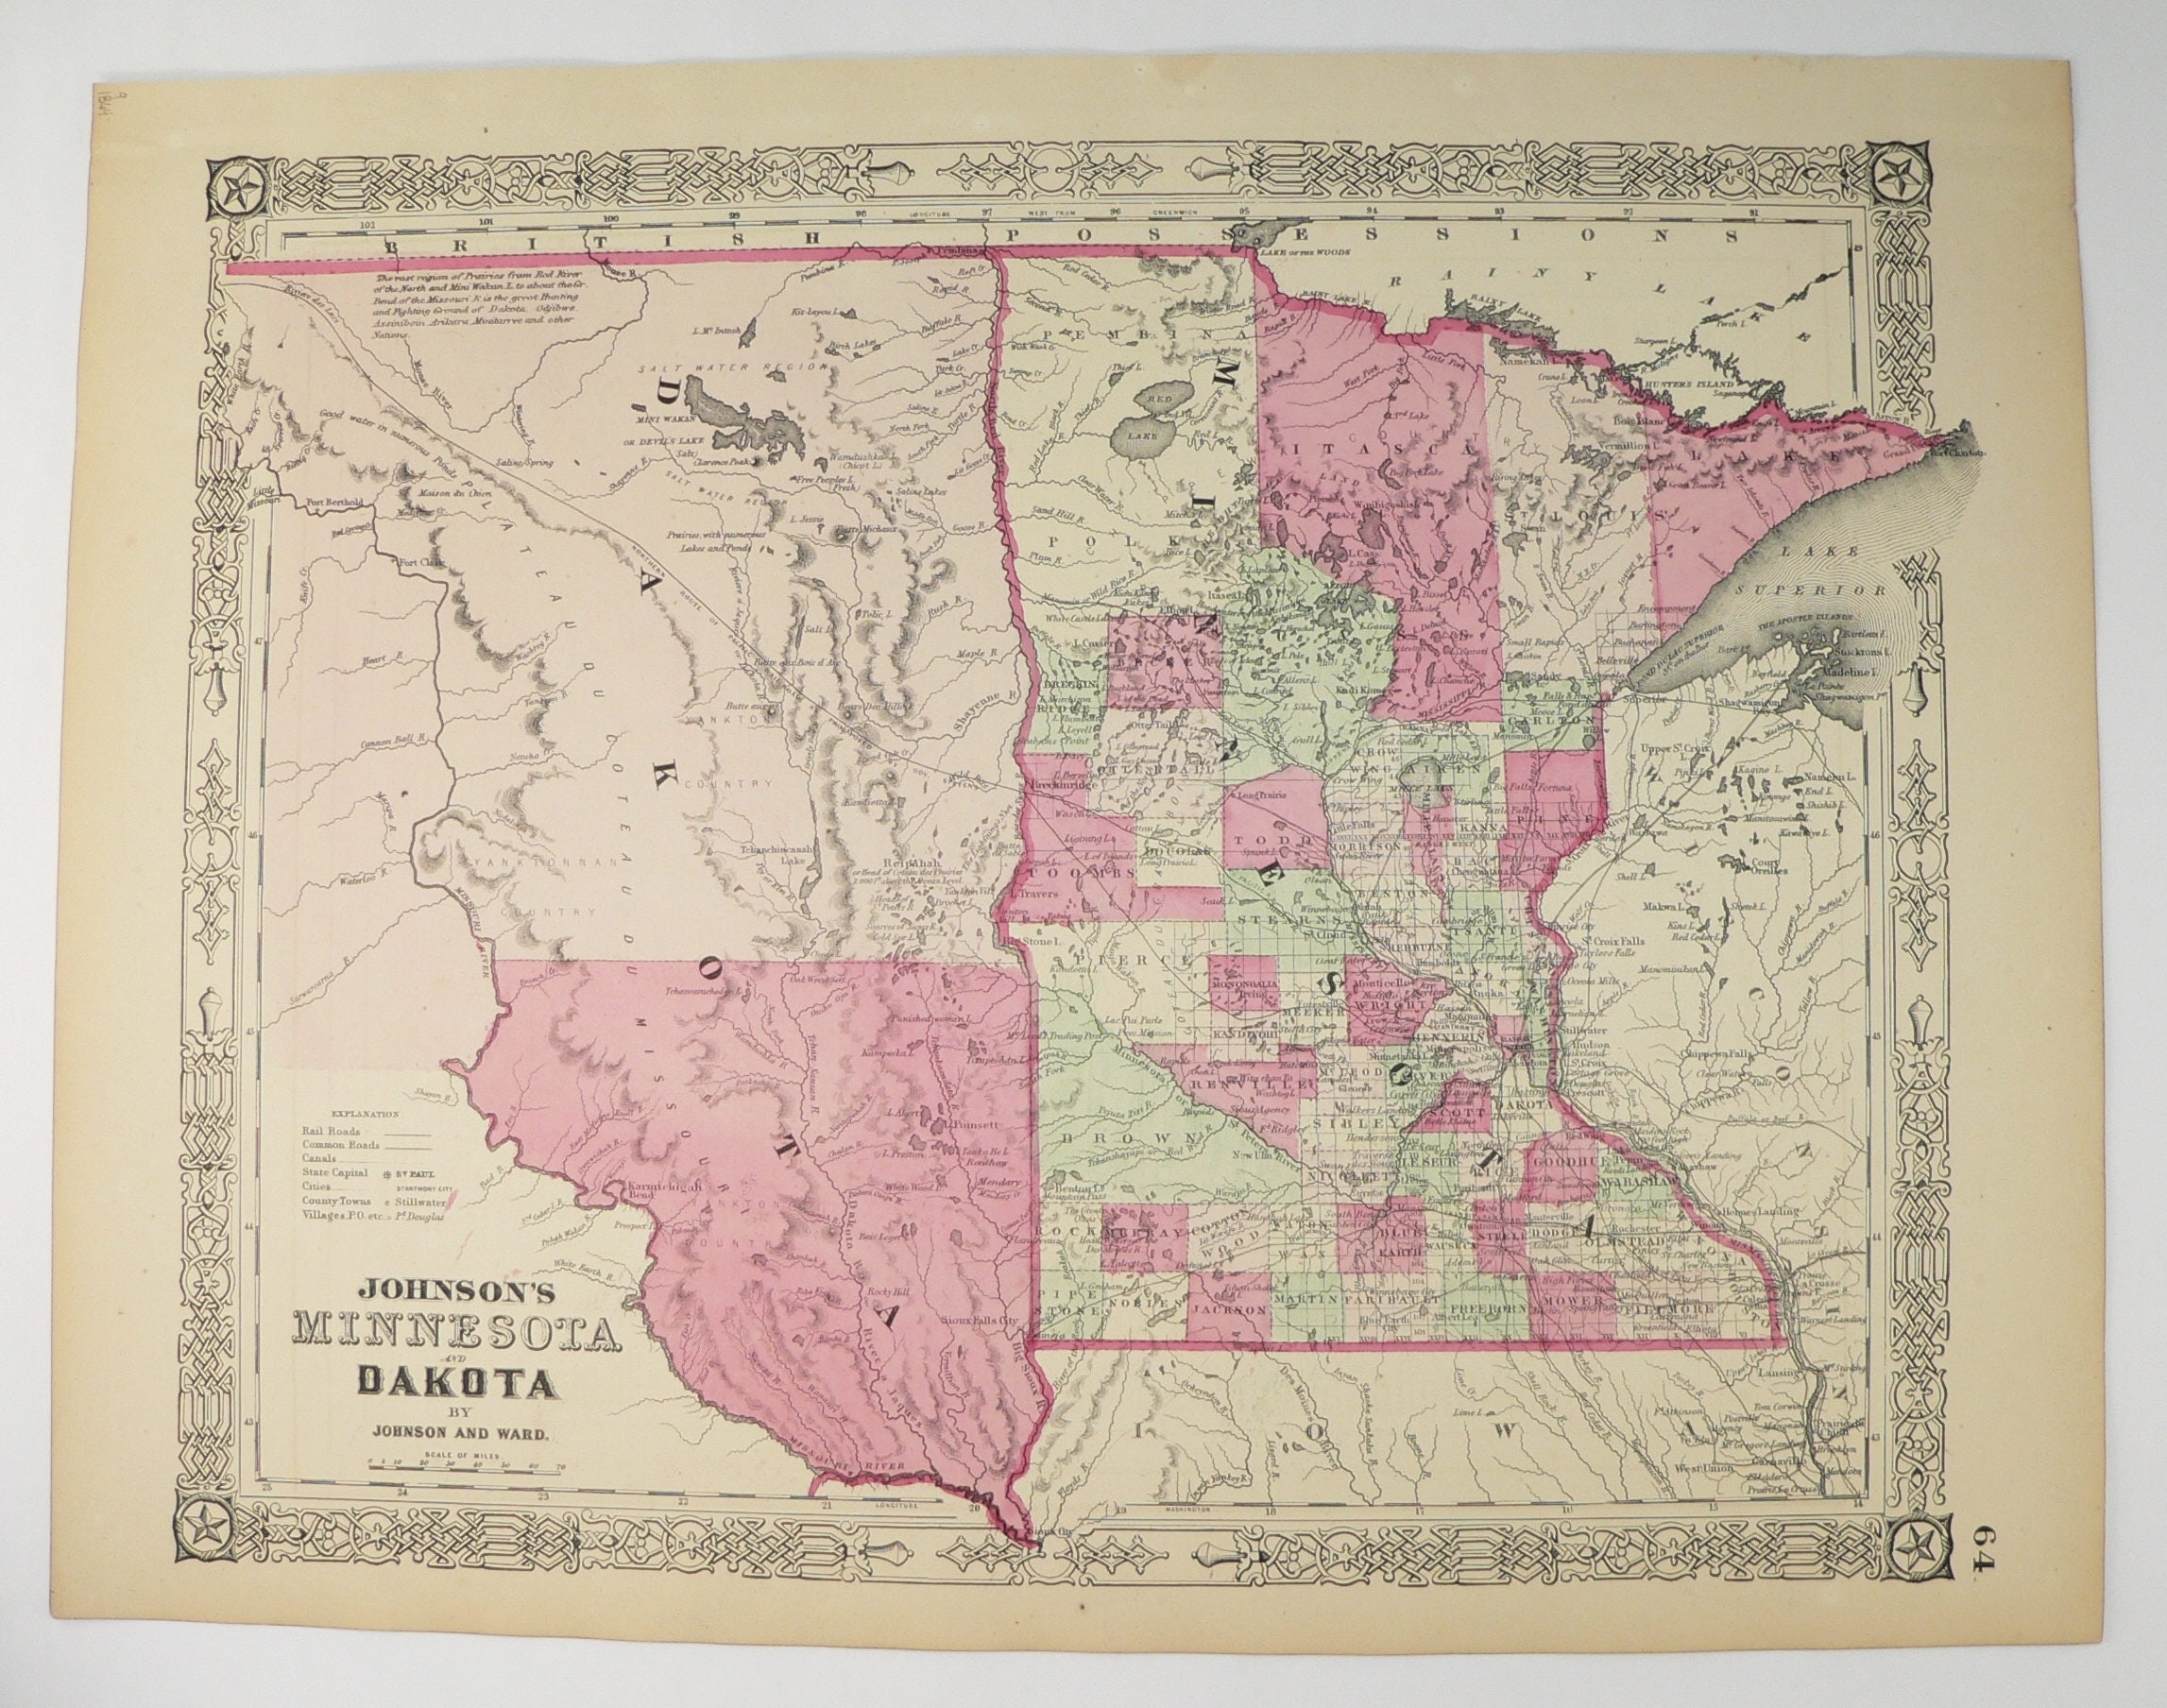 1864 Johnson Minnesota Map Dakota Territory Map North Dakota Etsy